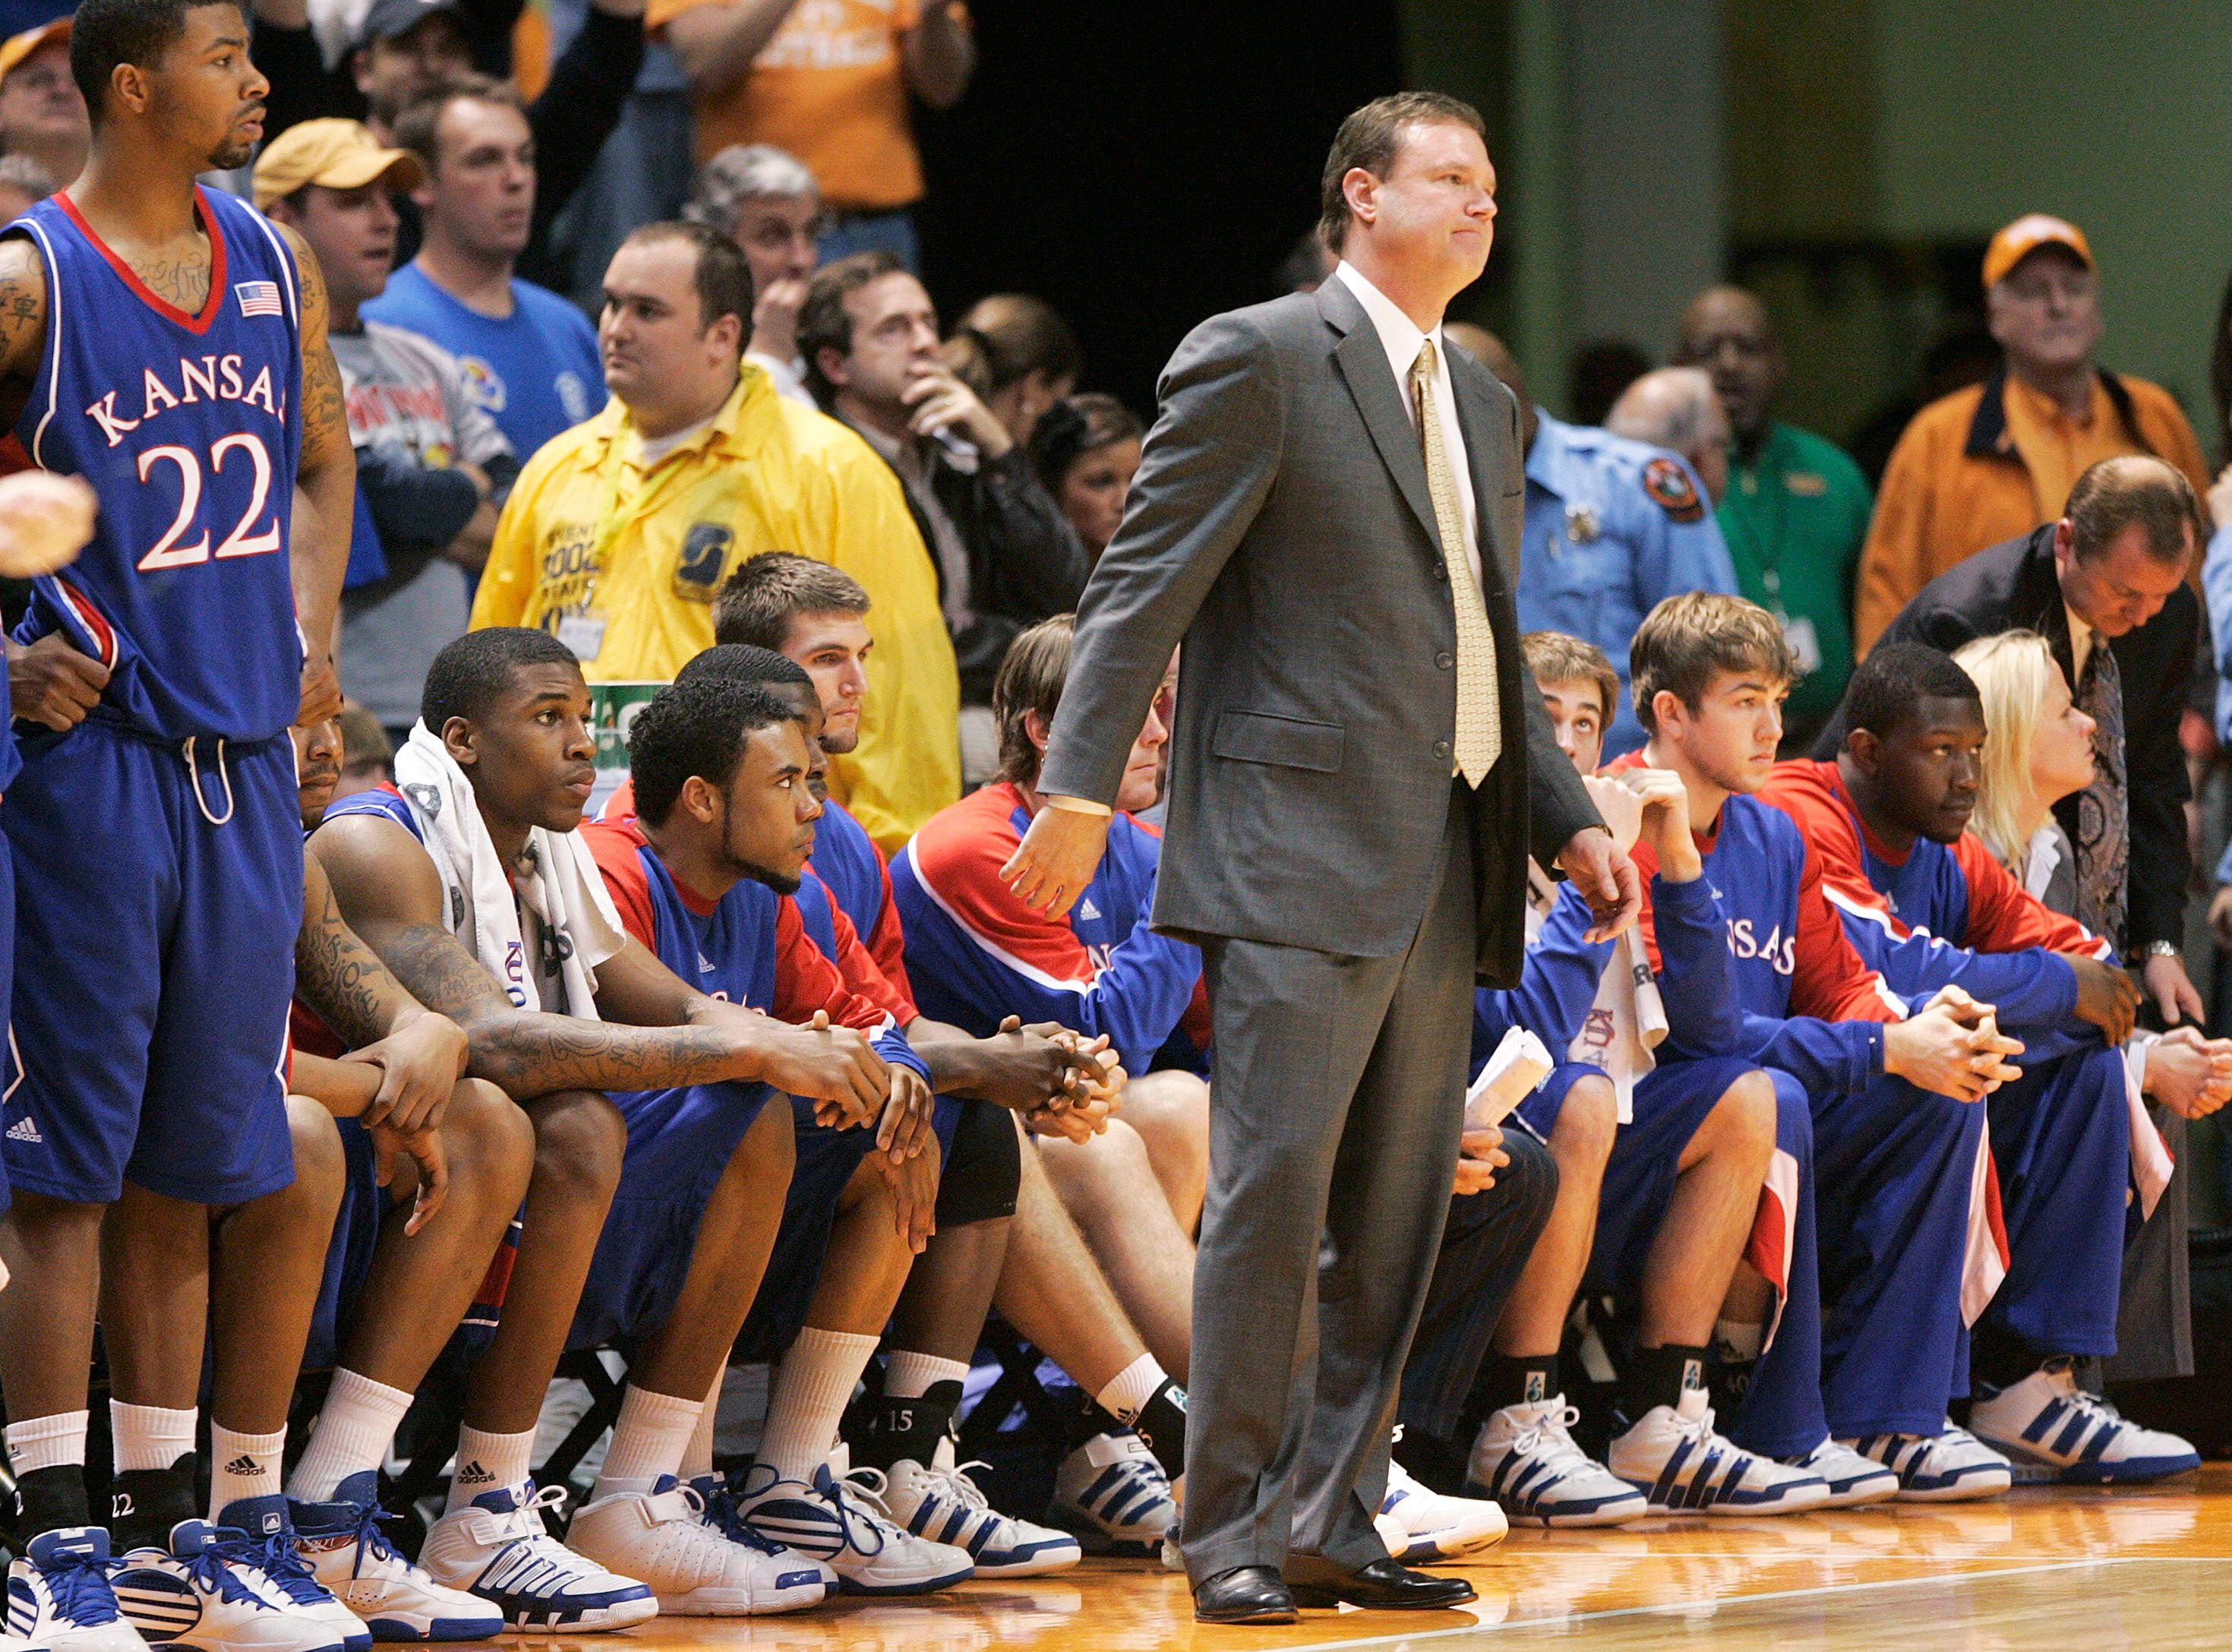 Kansas head coach Bill Self and his team look on against Tennessee in the second half of an NCAA college basketball game Sunday, Jan. 10, 2010, in Knoxville, Tenn. Tennessee won 76-68.